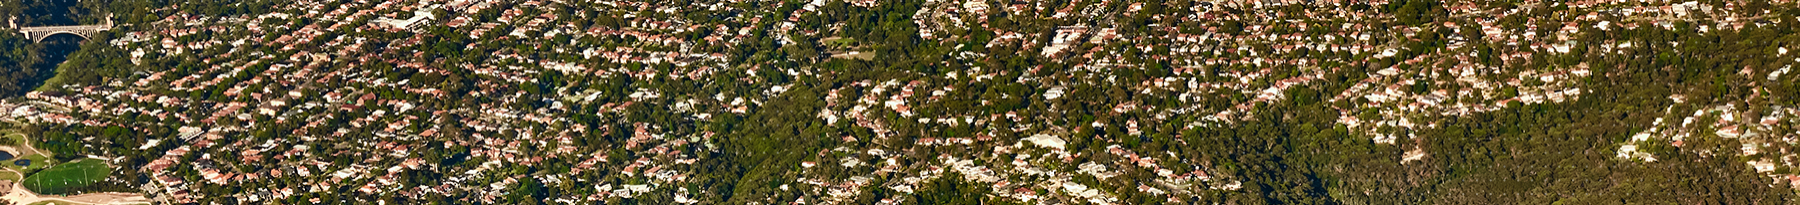 Aerial photograph of Sydney suburbs